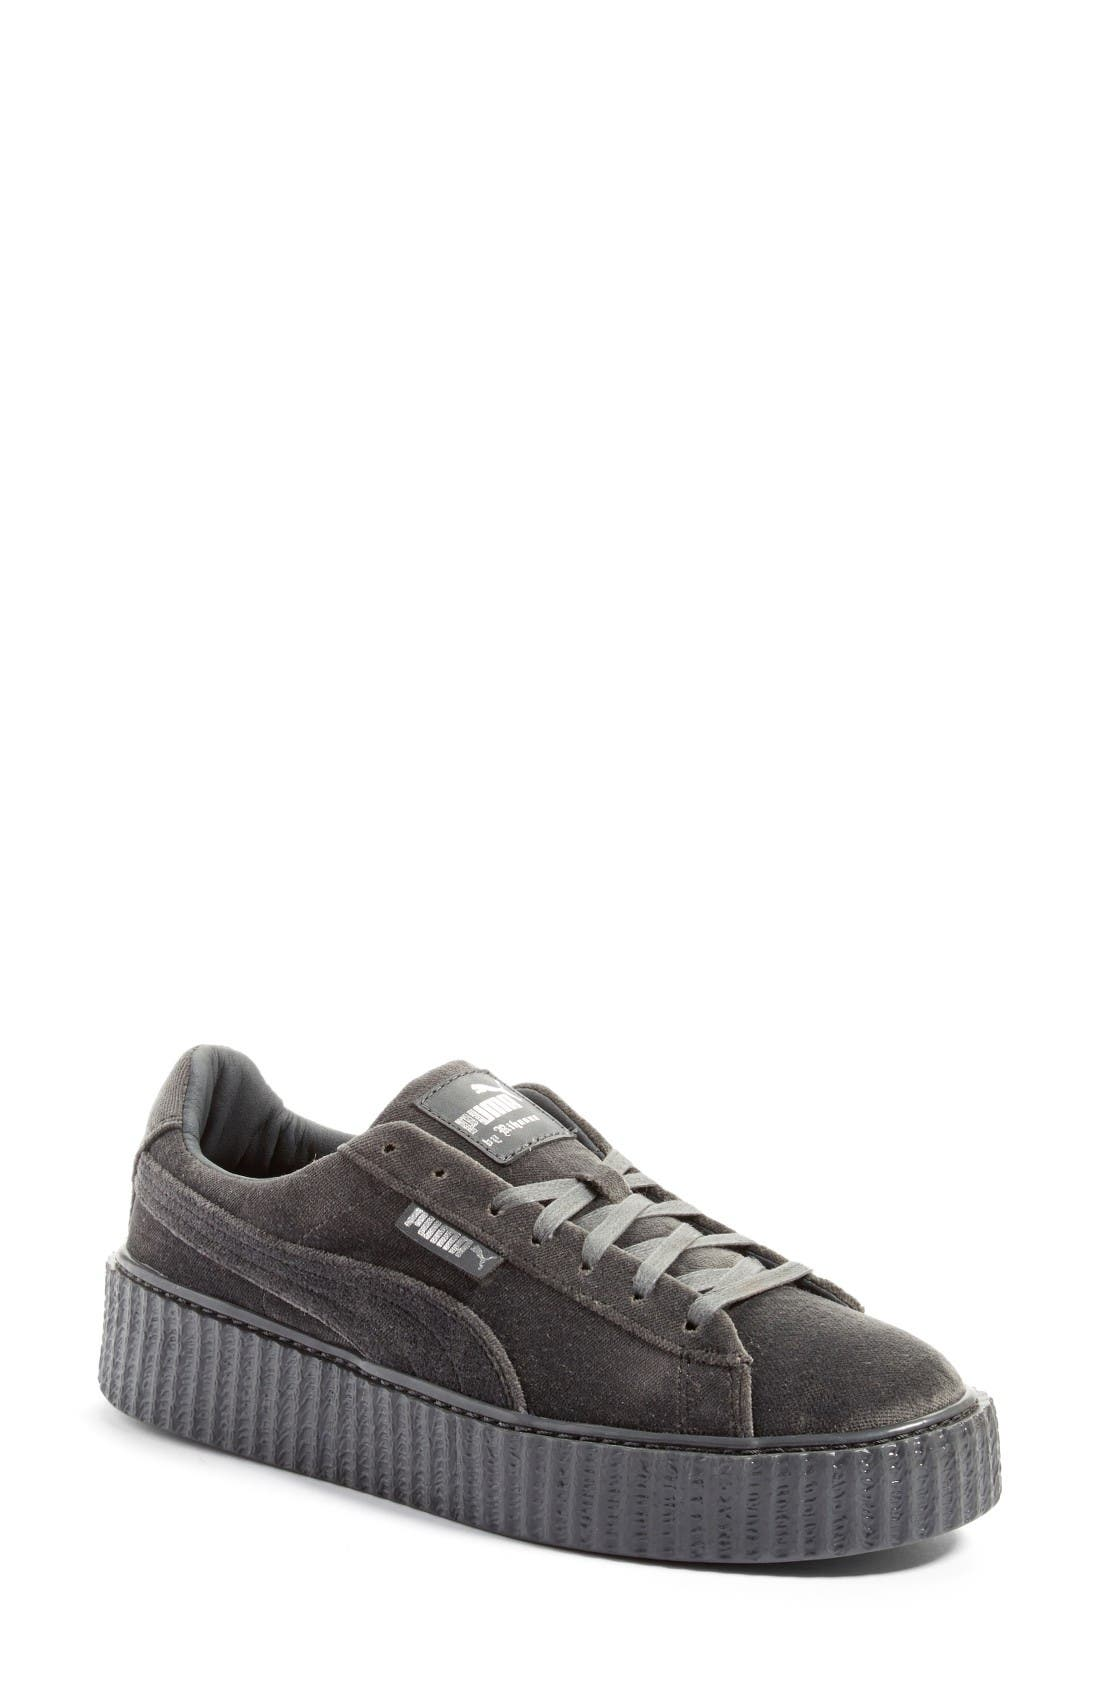 Alternate Image 1 Selected - FENTY PUMA by Rihanna Creeper Sneaker (Women)